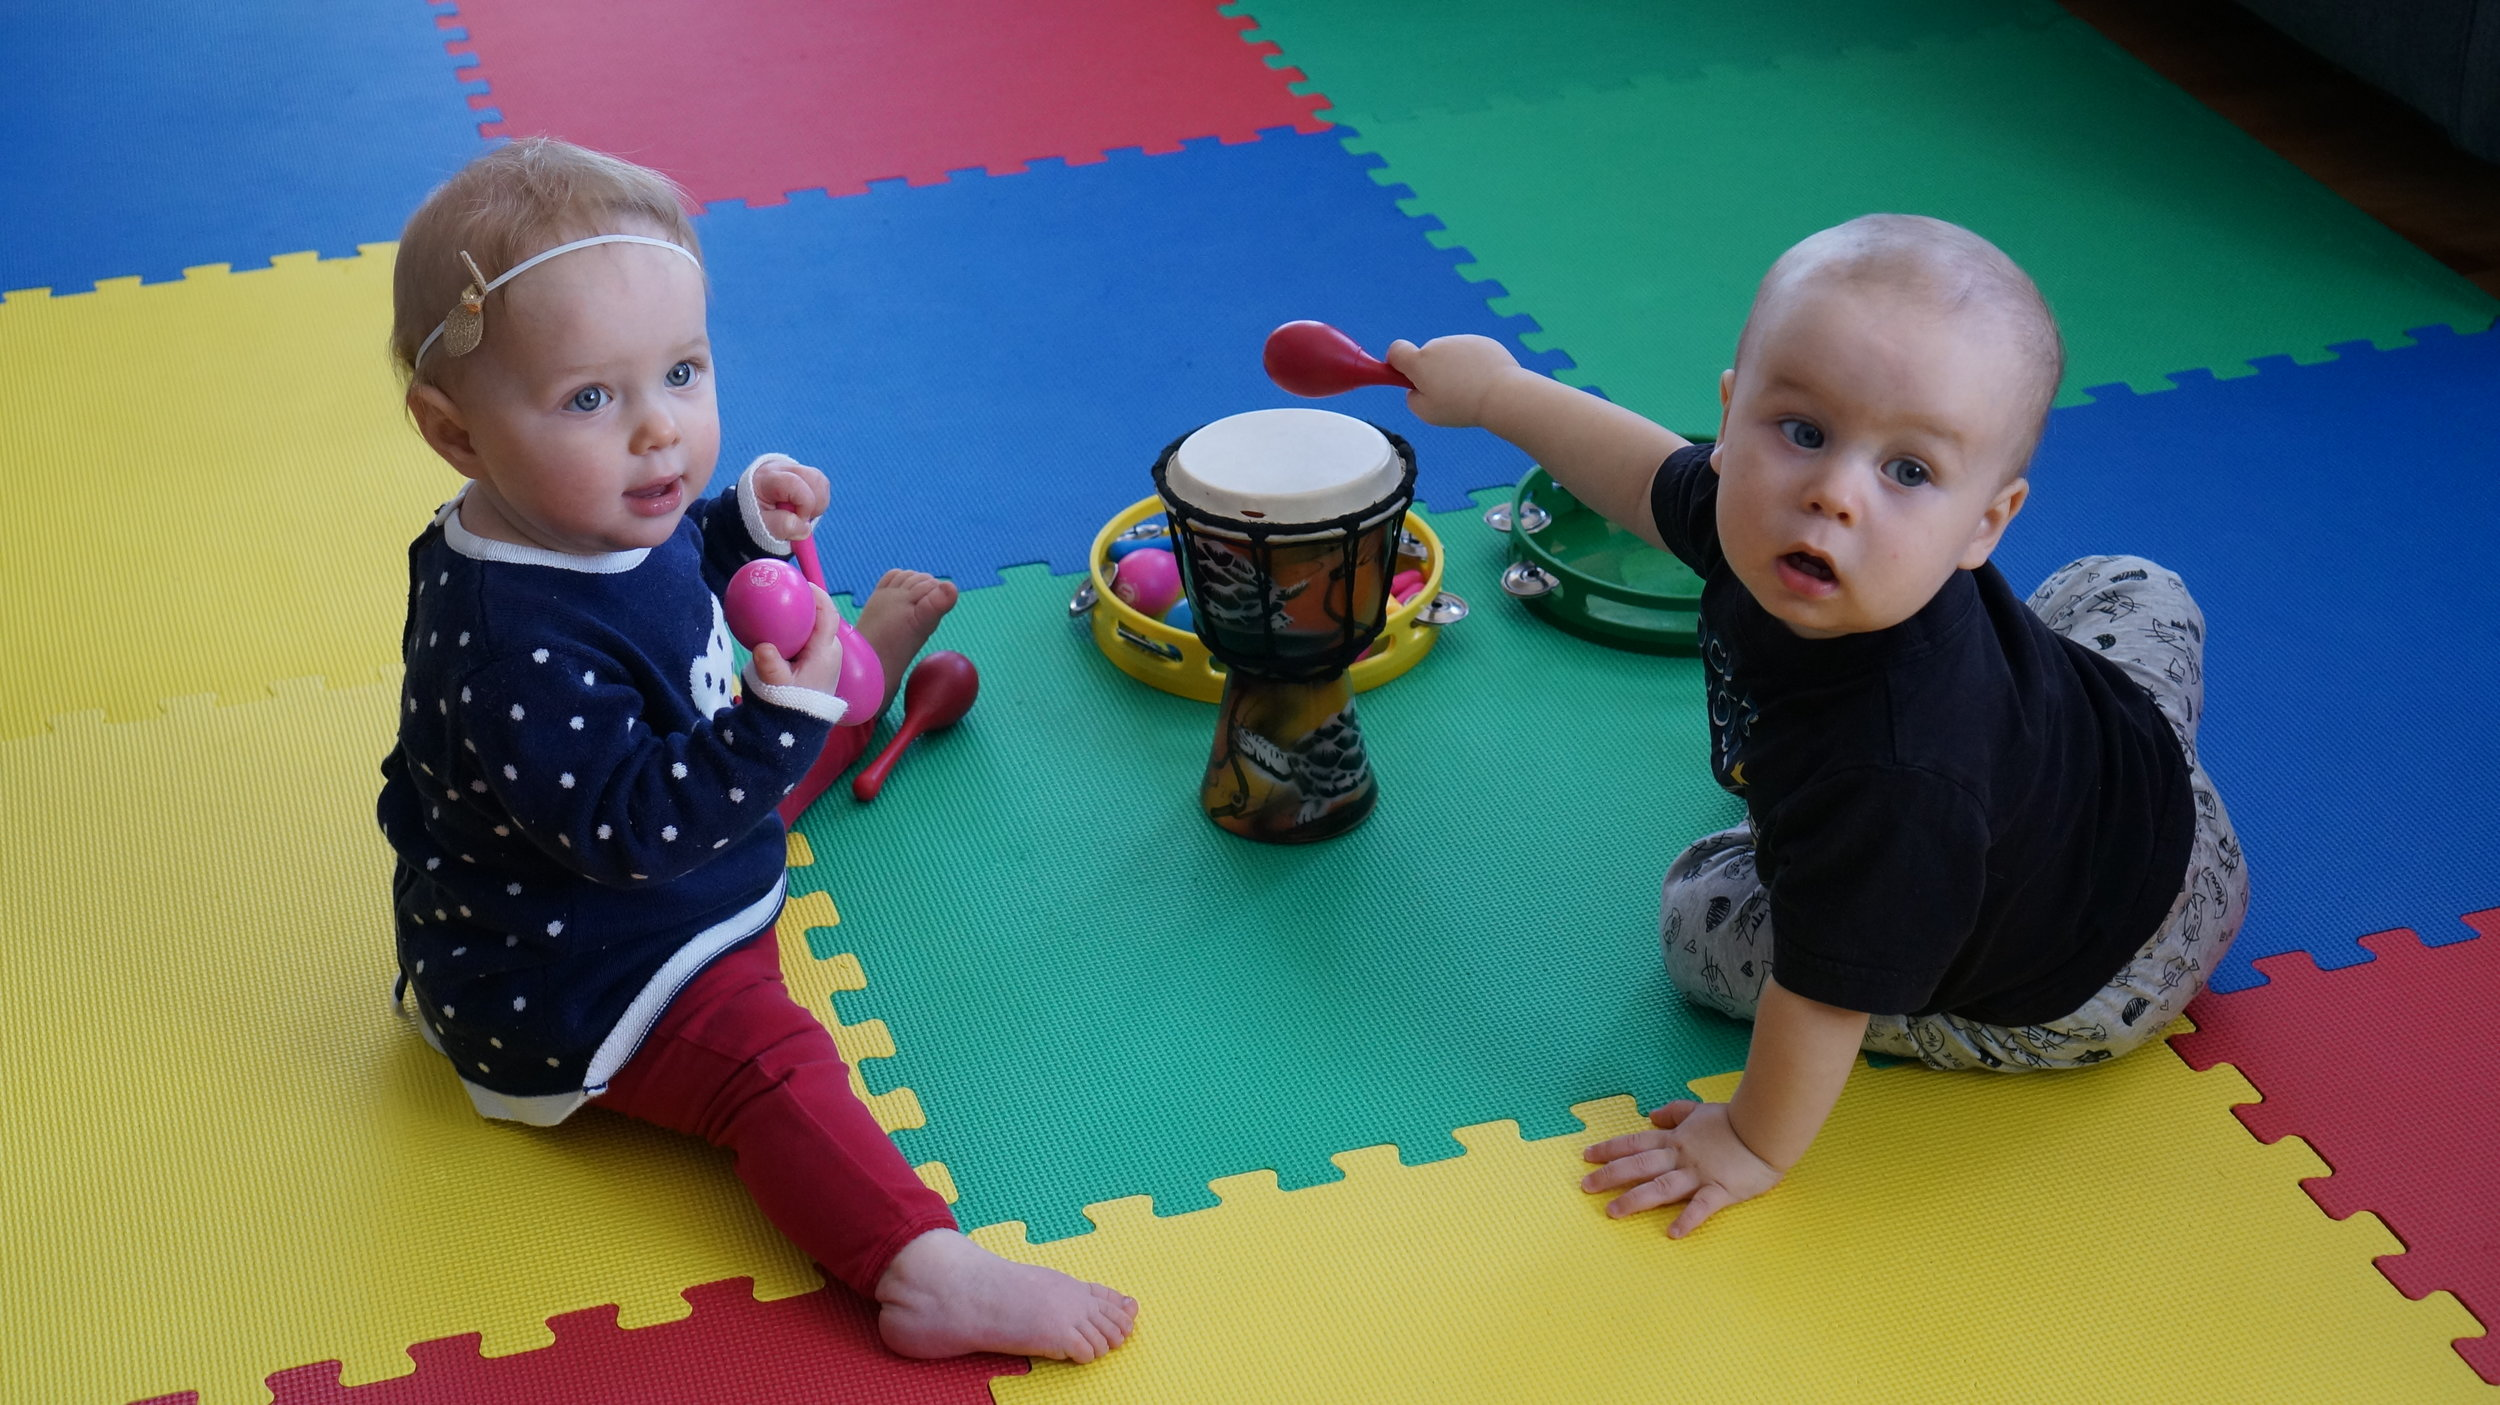 NORTH MUSIC THERAPY - Fun and engaging music groups work on social, motor, language, and pre-academic skills. Babies explore their surroundings through music and parents learn new songs.